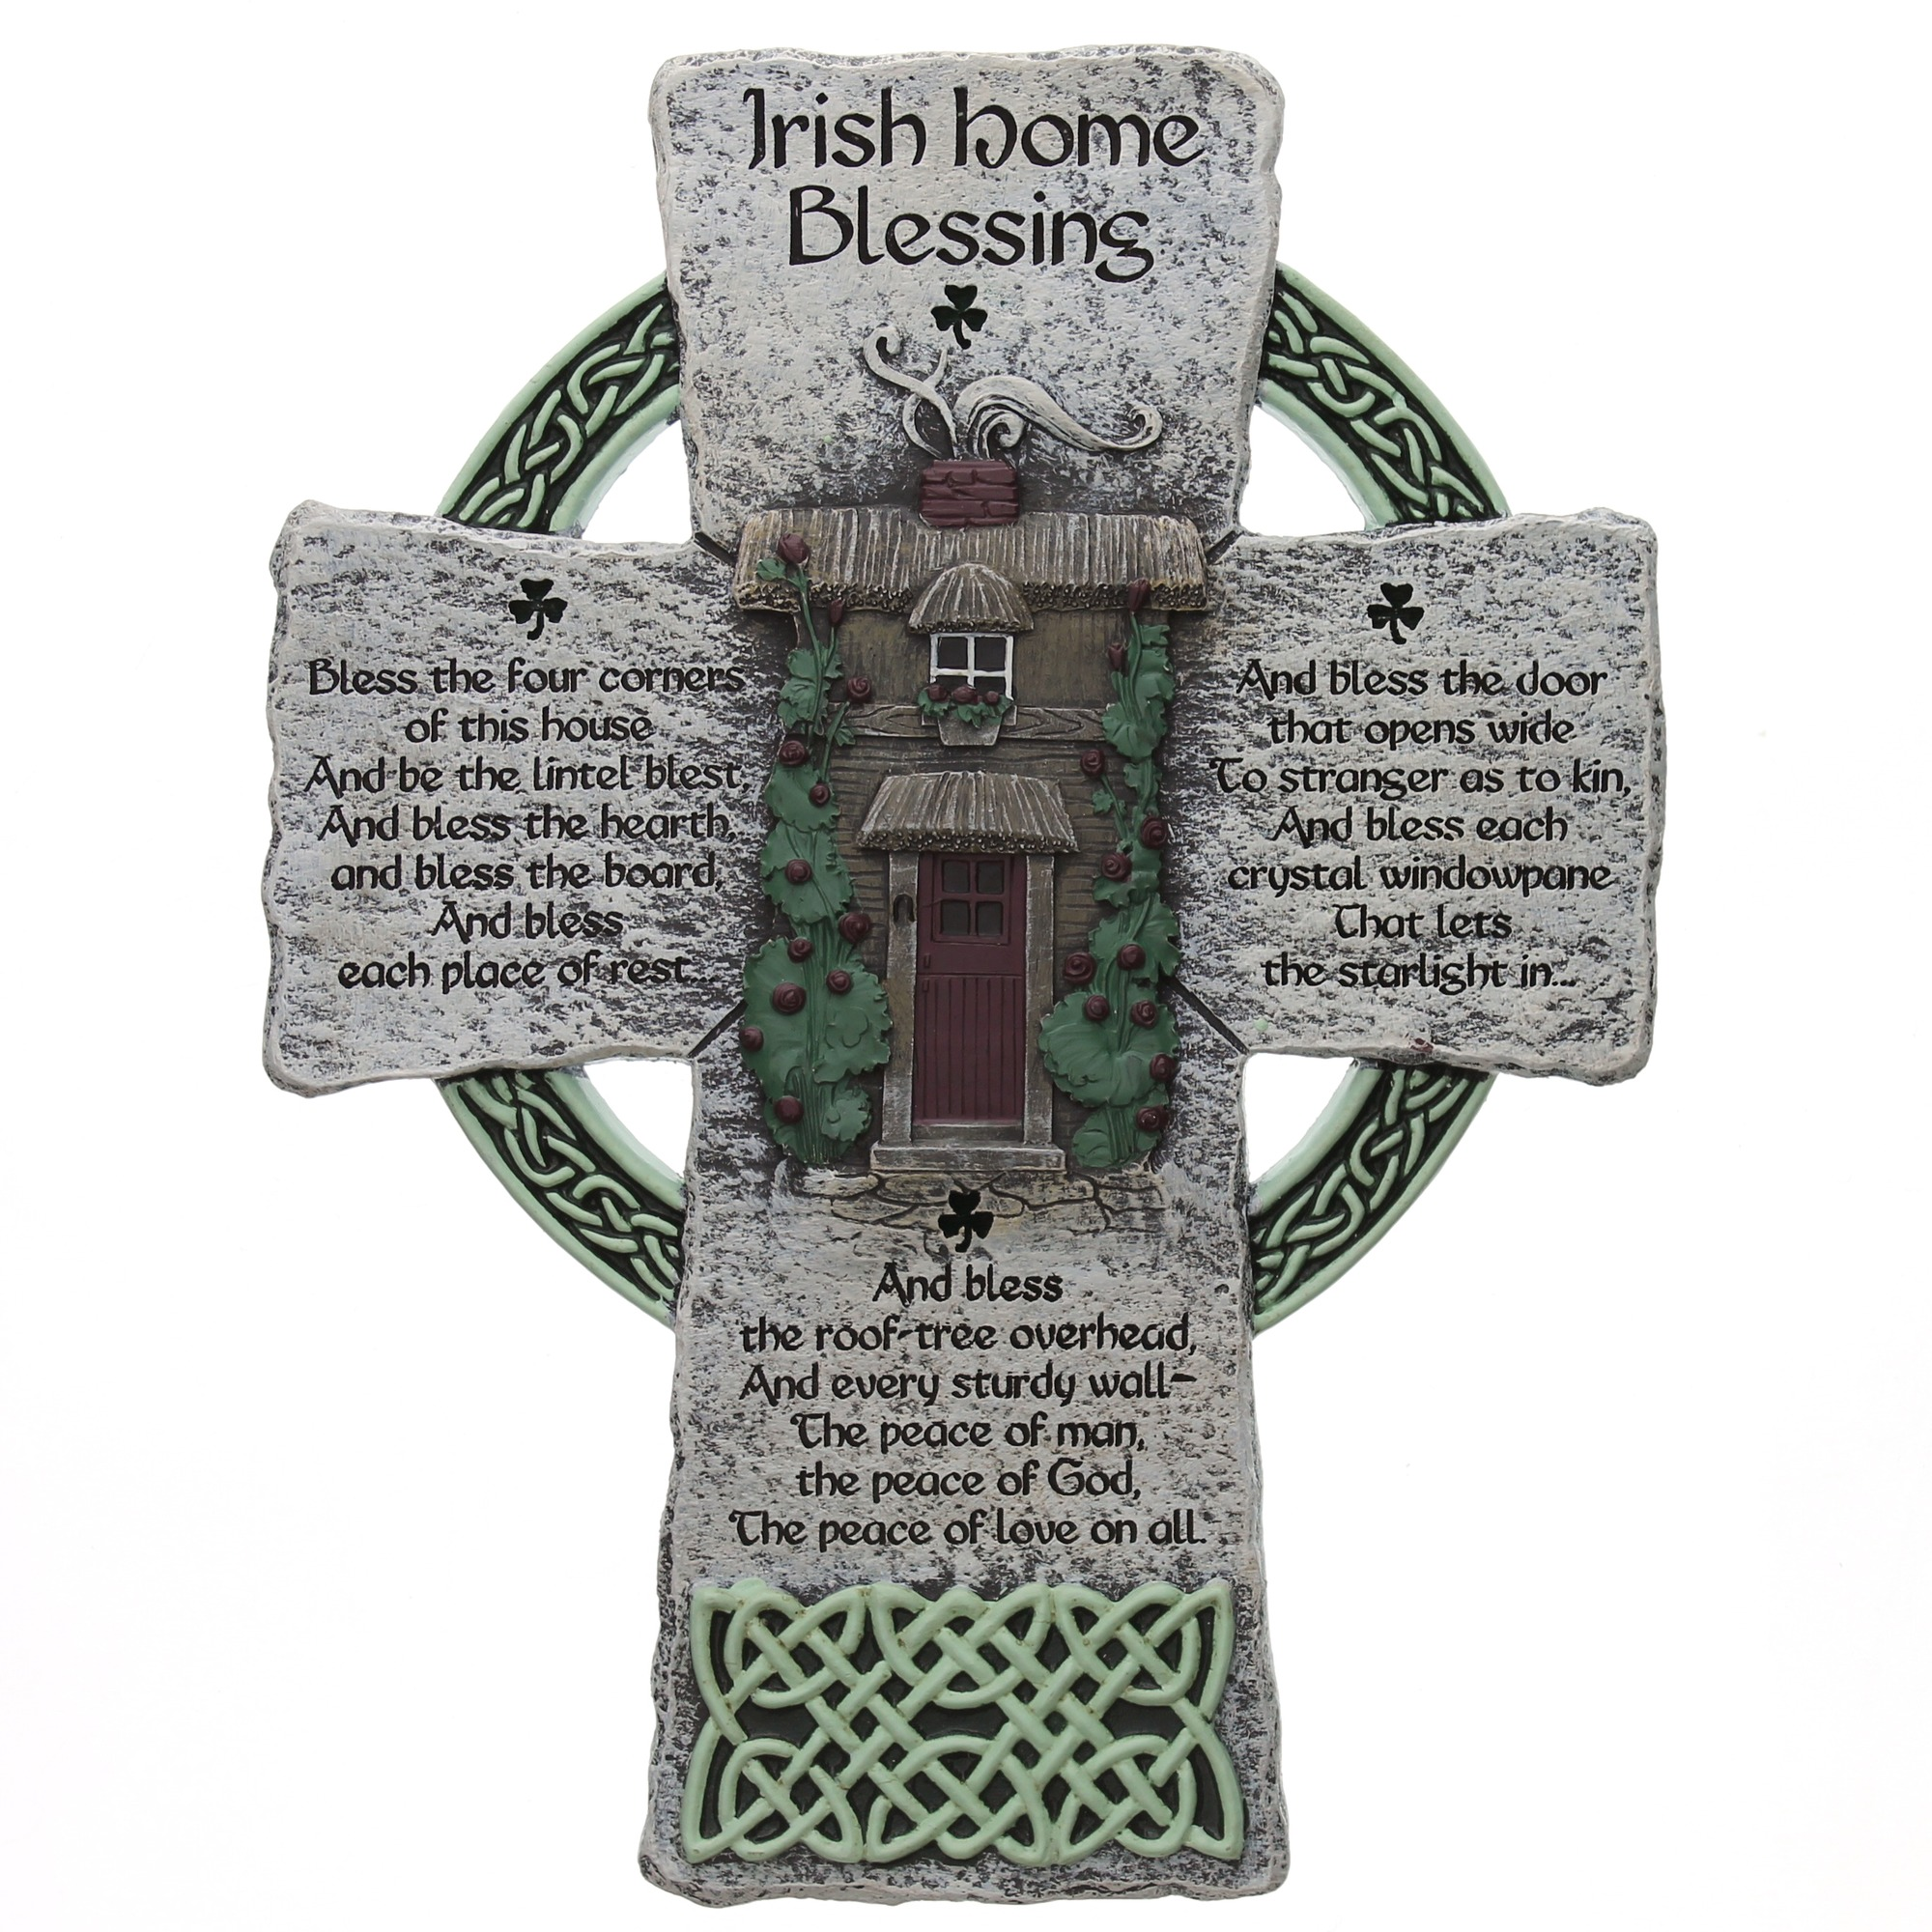 Irish home blessing cross 8 inches the catholic company irish home blessing cross 8 inches amipublicfo Images